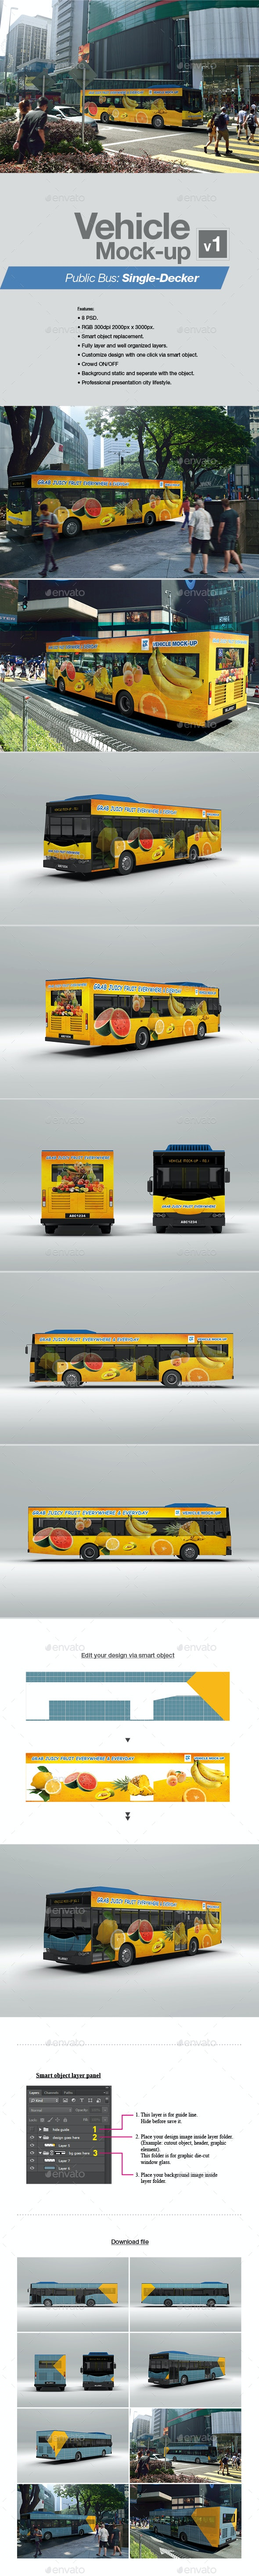 Vehicle Mock-up v1 by kenoric | GraphicRiver